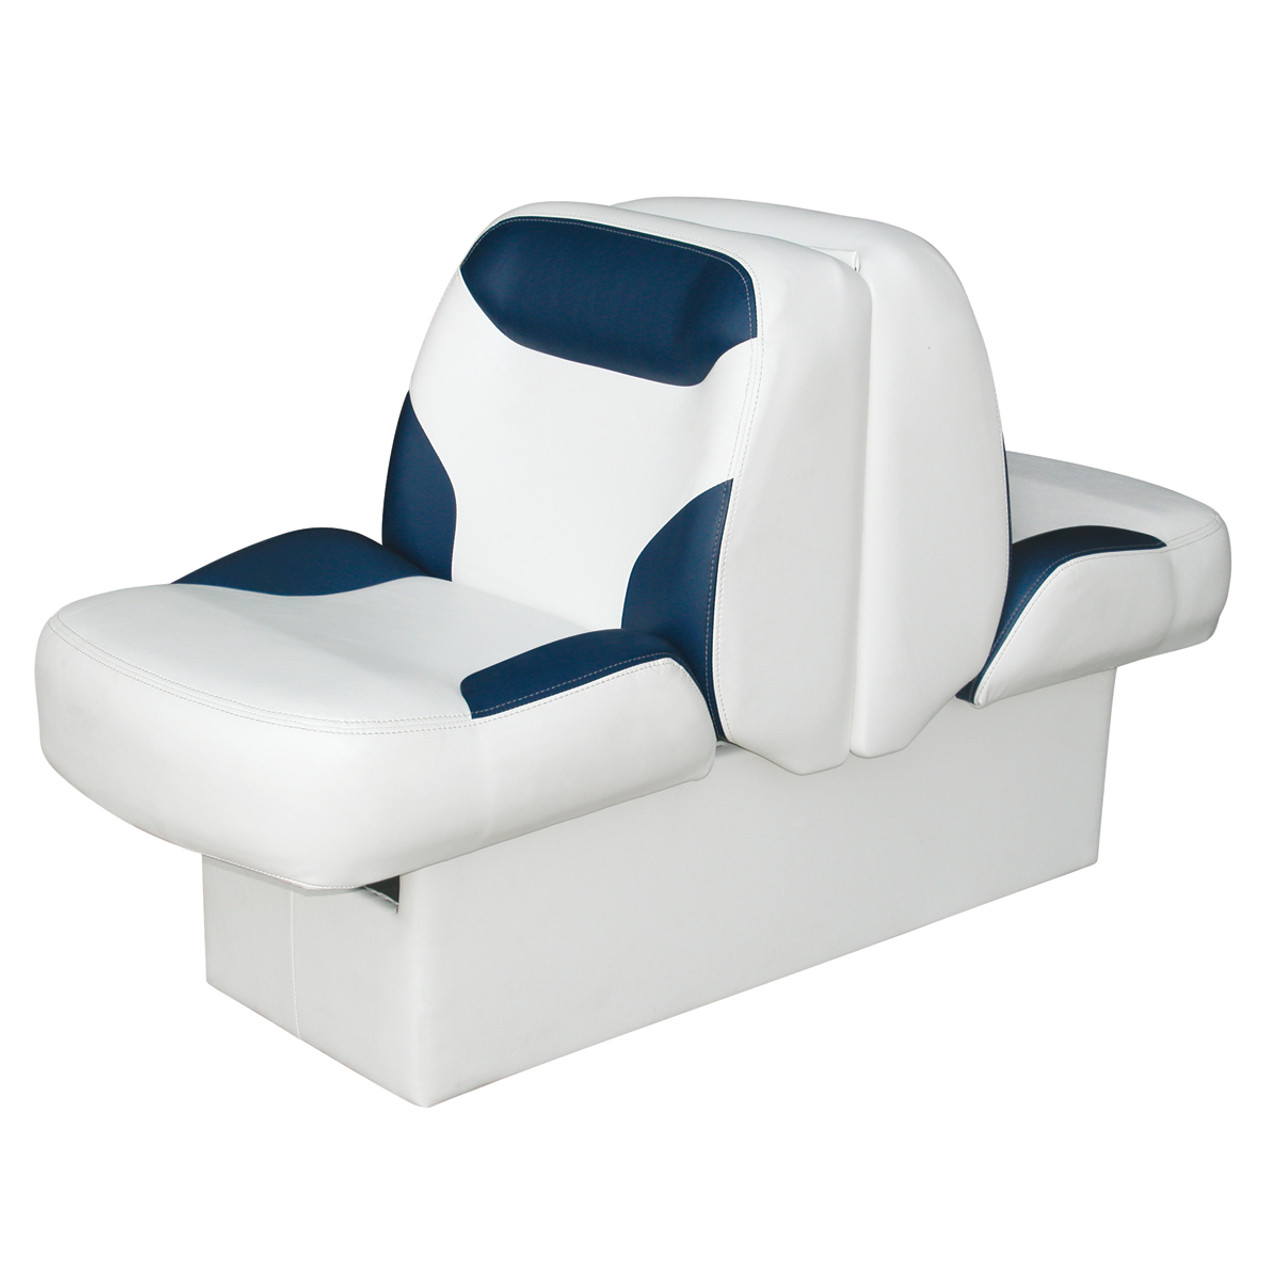 Wise | Back-to-Back Boat Seat | Premium Bayliner Lounge